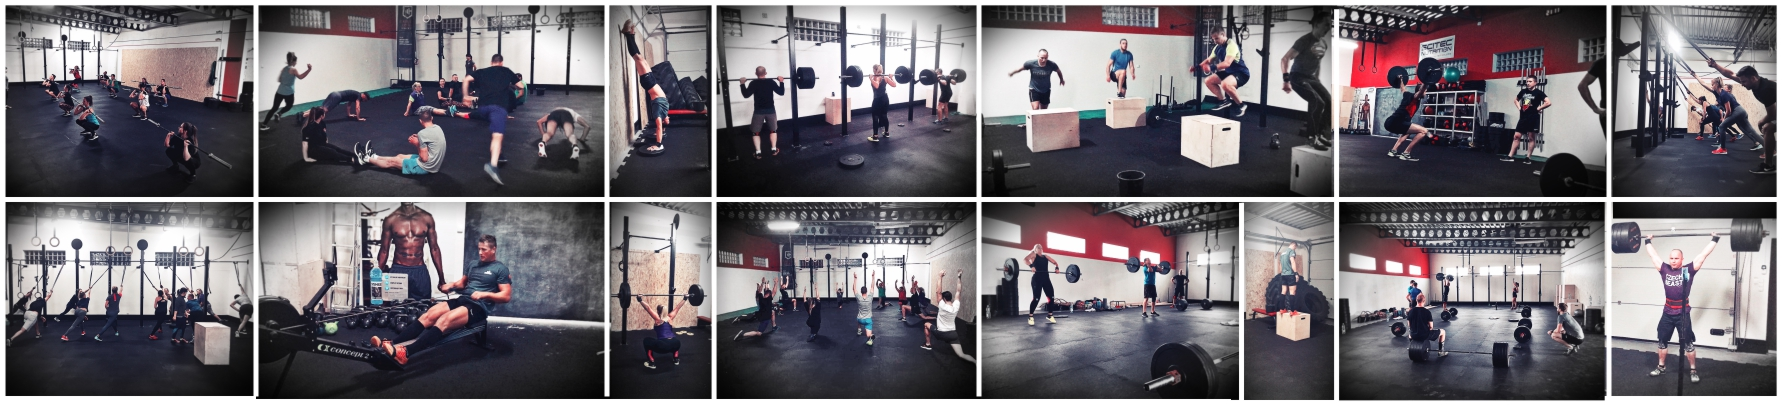 cross_zone_bialystok_trening_workout_wod